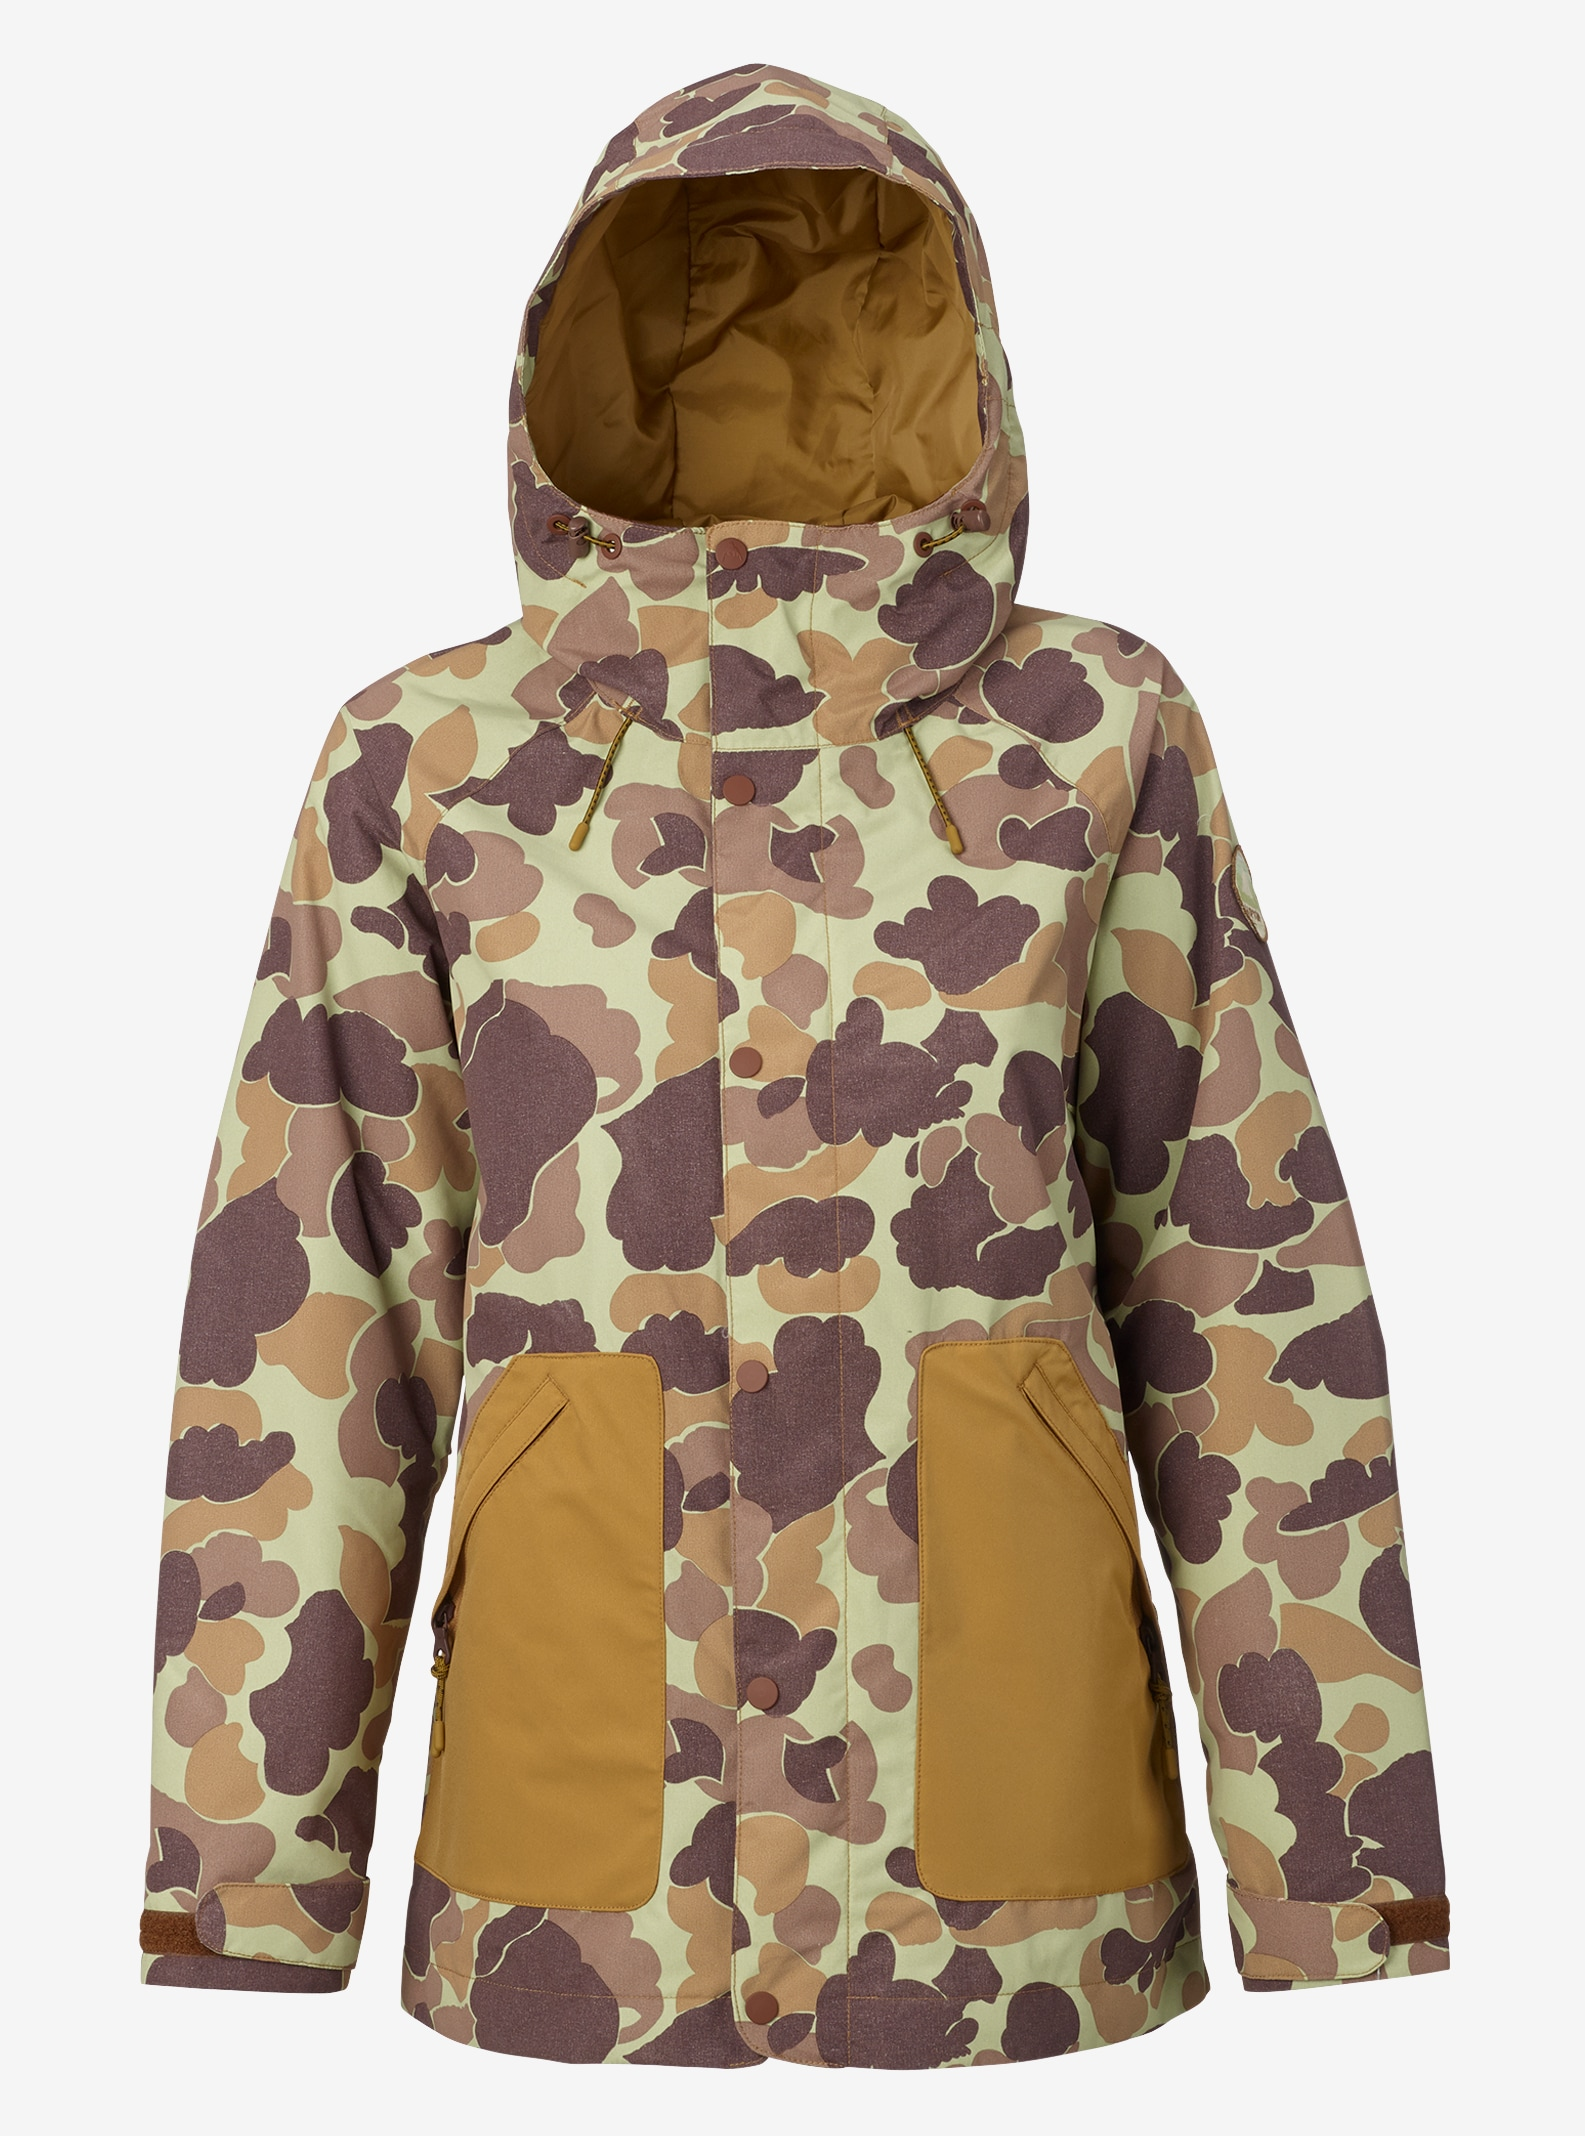 Women's Burton Eastfall Jacket shown in Bean Camo / Dull Gold